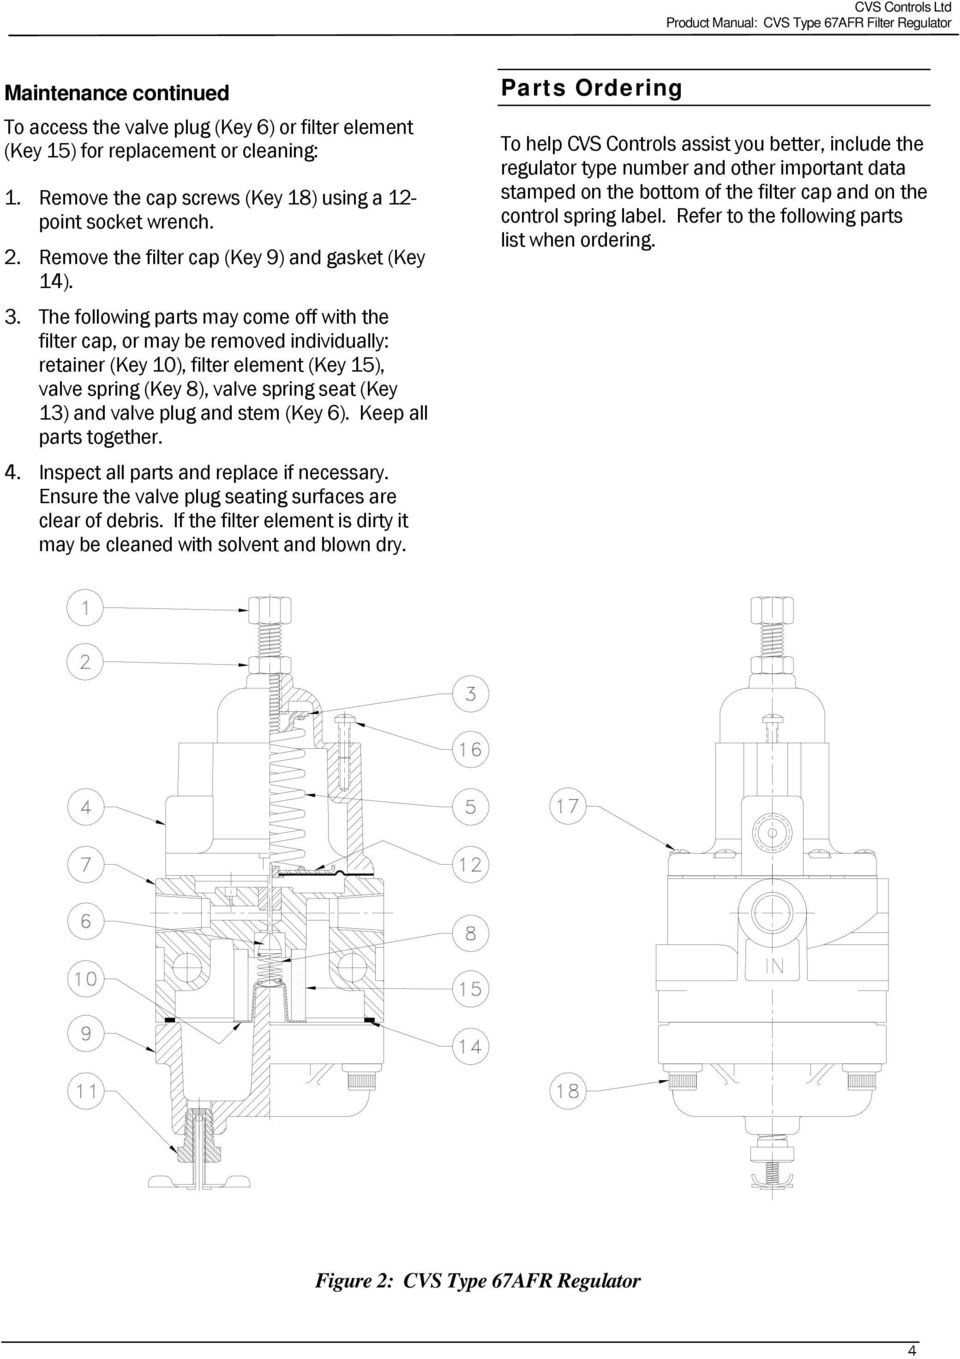 Product Manual Cvs Type 67afr Filter Regulator Introduction Cap Schematic The Following Parts May Come Off With Or Be Removed Individually